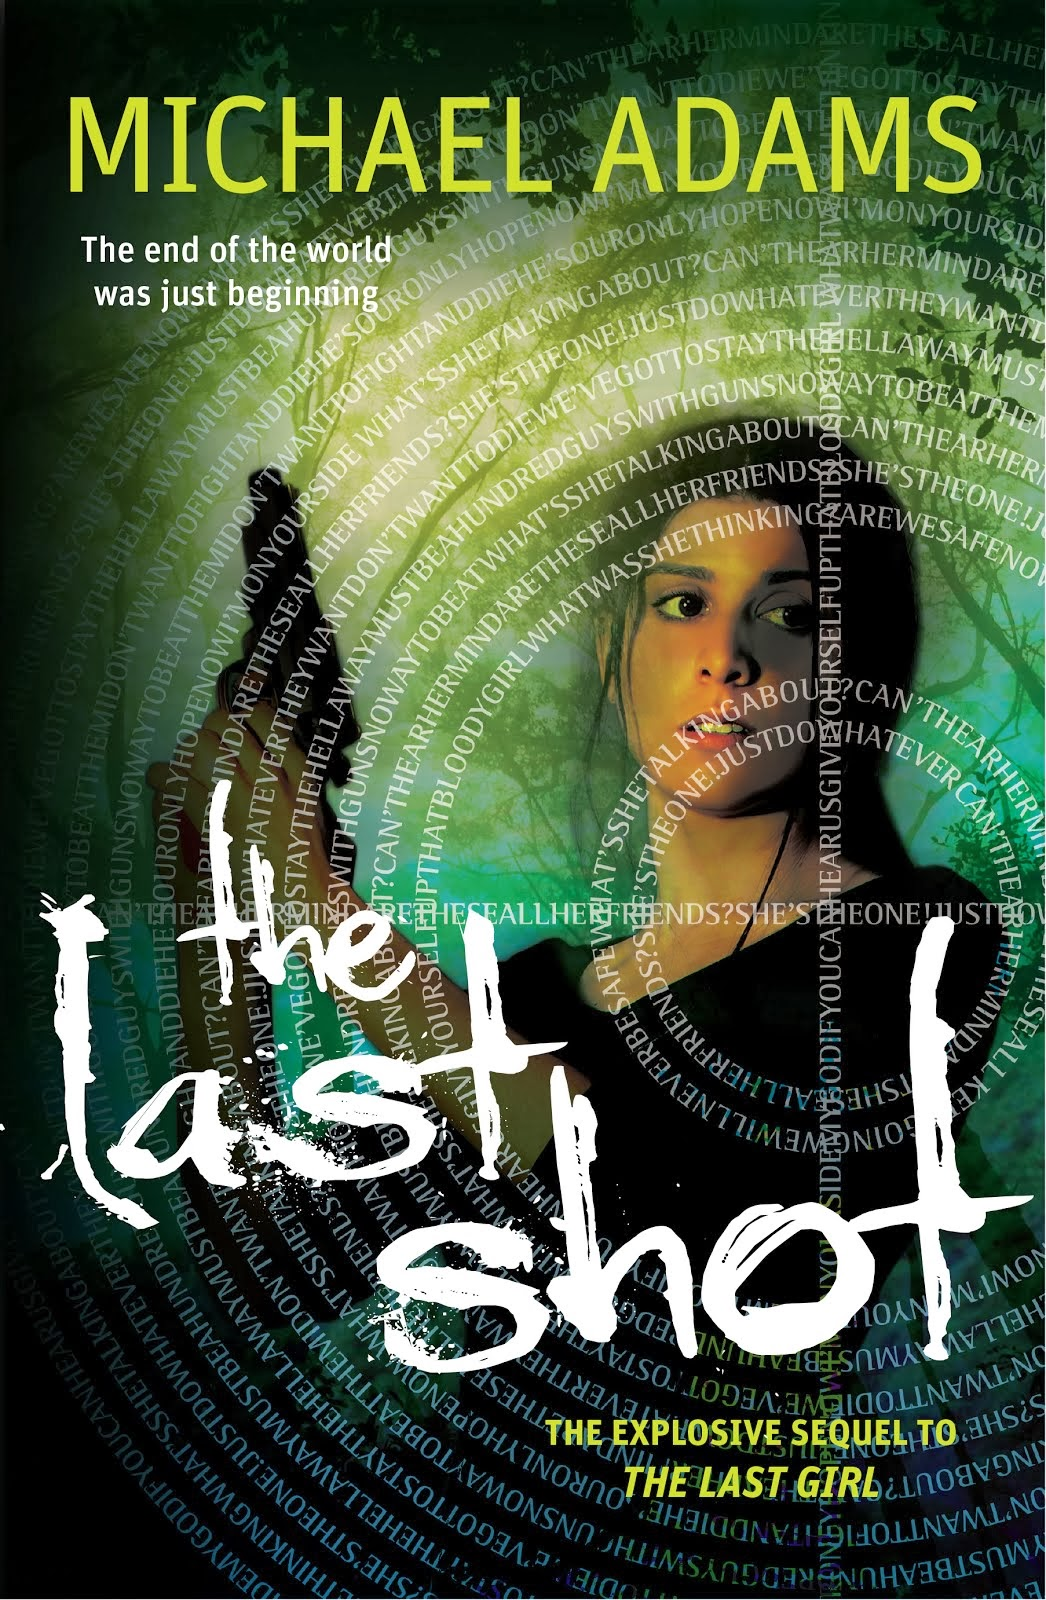 Win 1 of 3 copies of 'The Last Shot' by Michael Adams